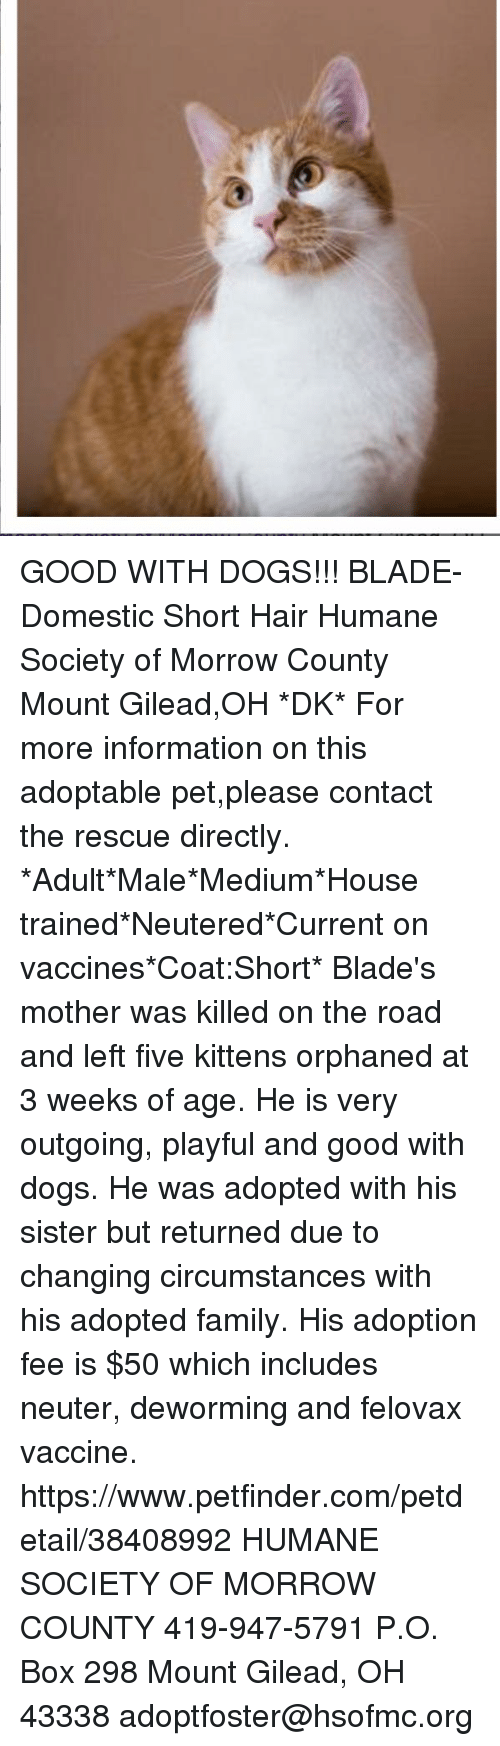 Ohio morrow county mount gilead - Blade Dogs And Family Good With Dogs Blade Domestic